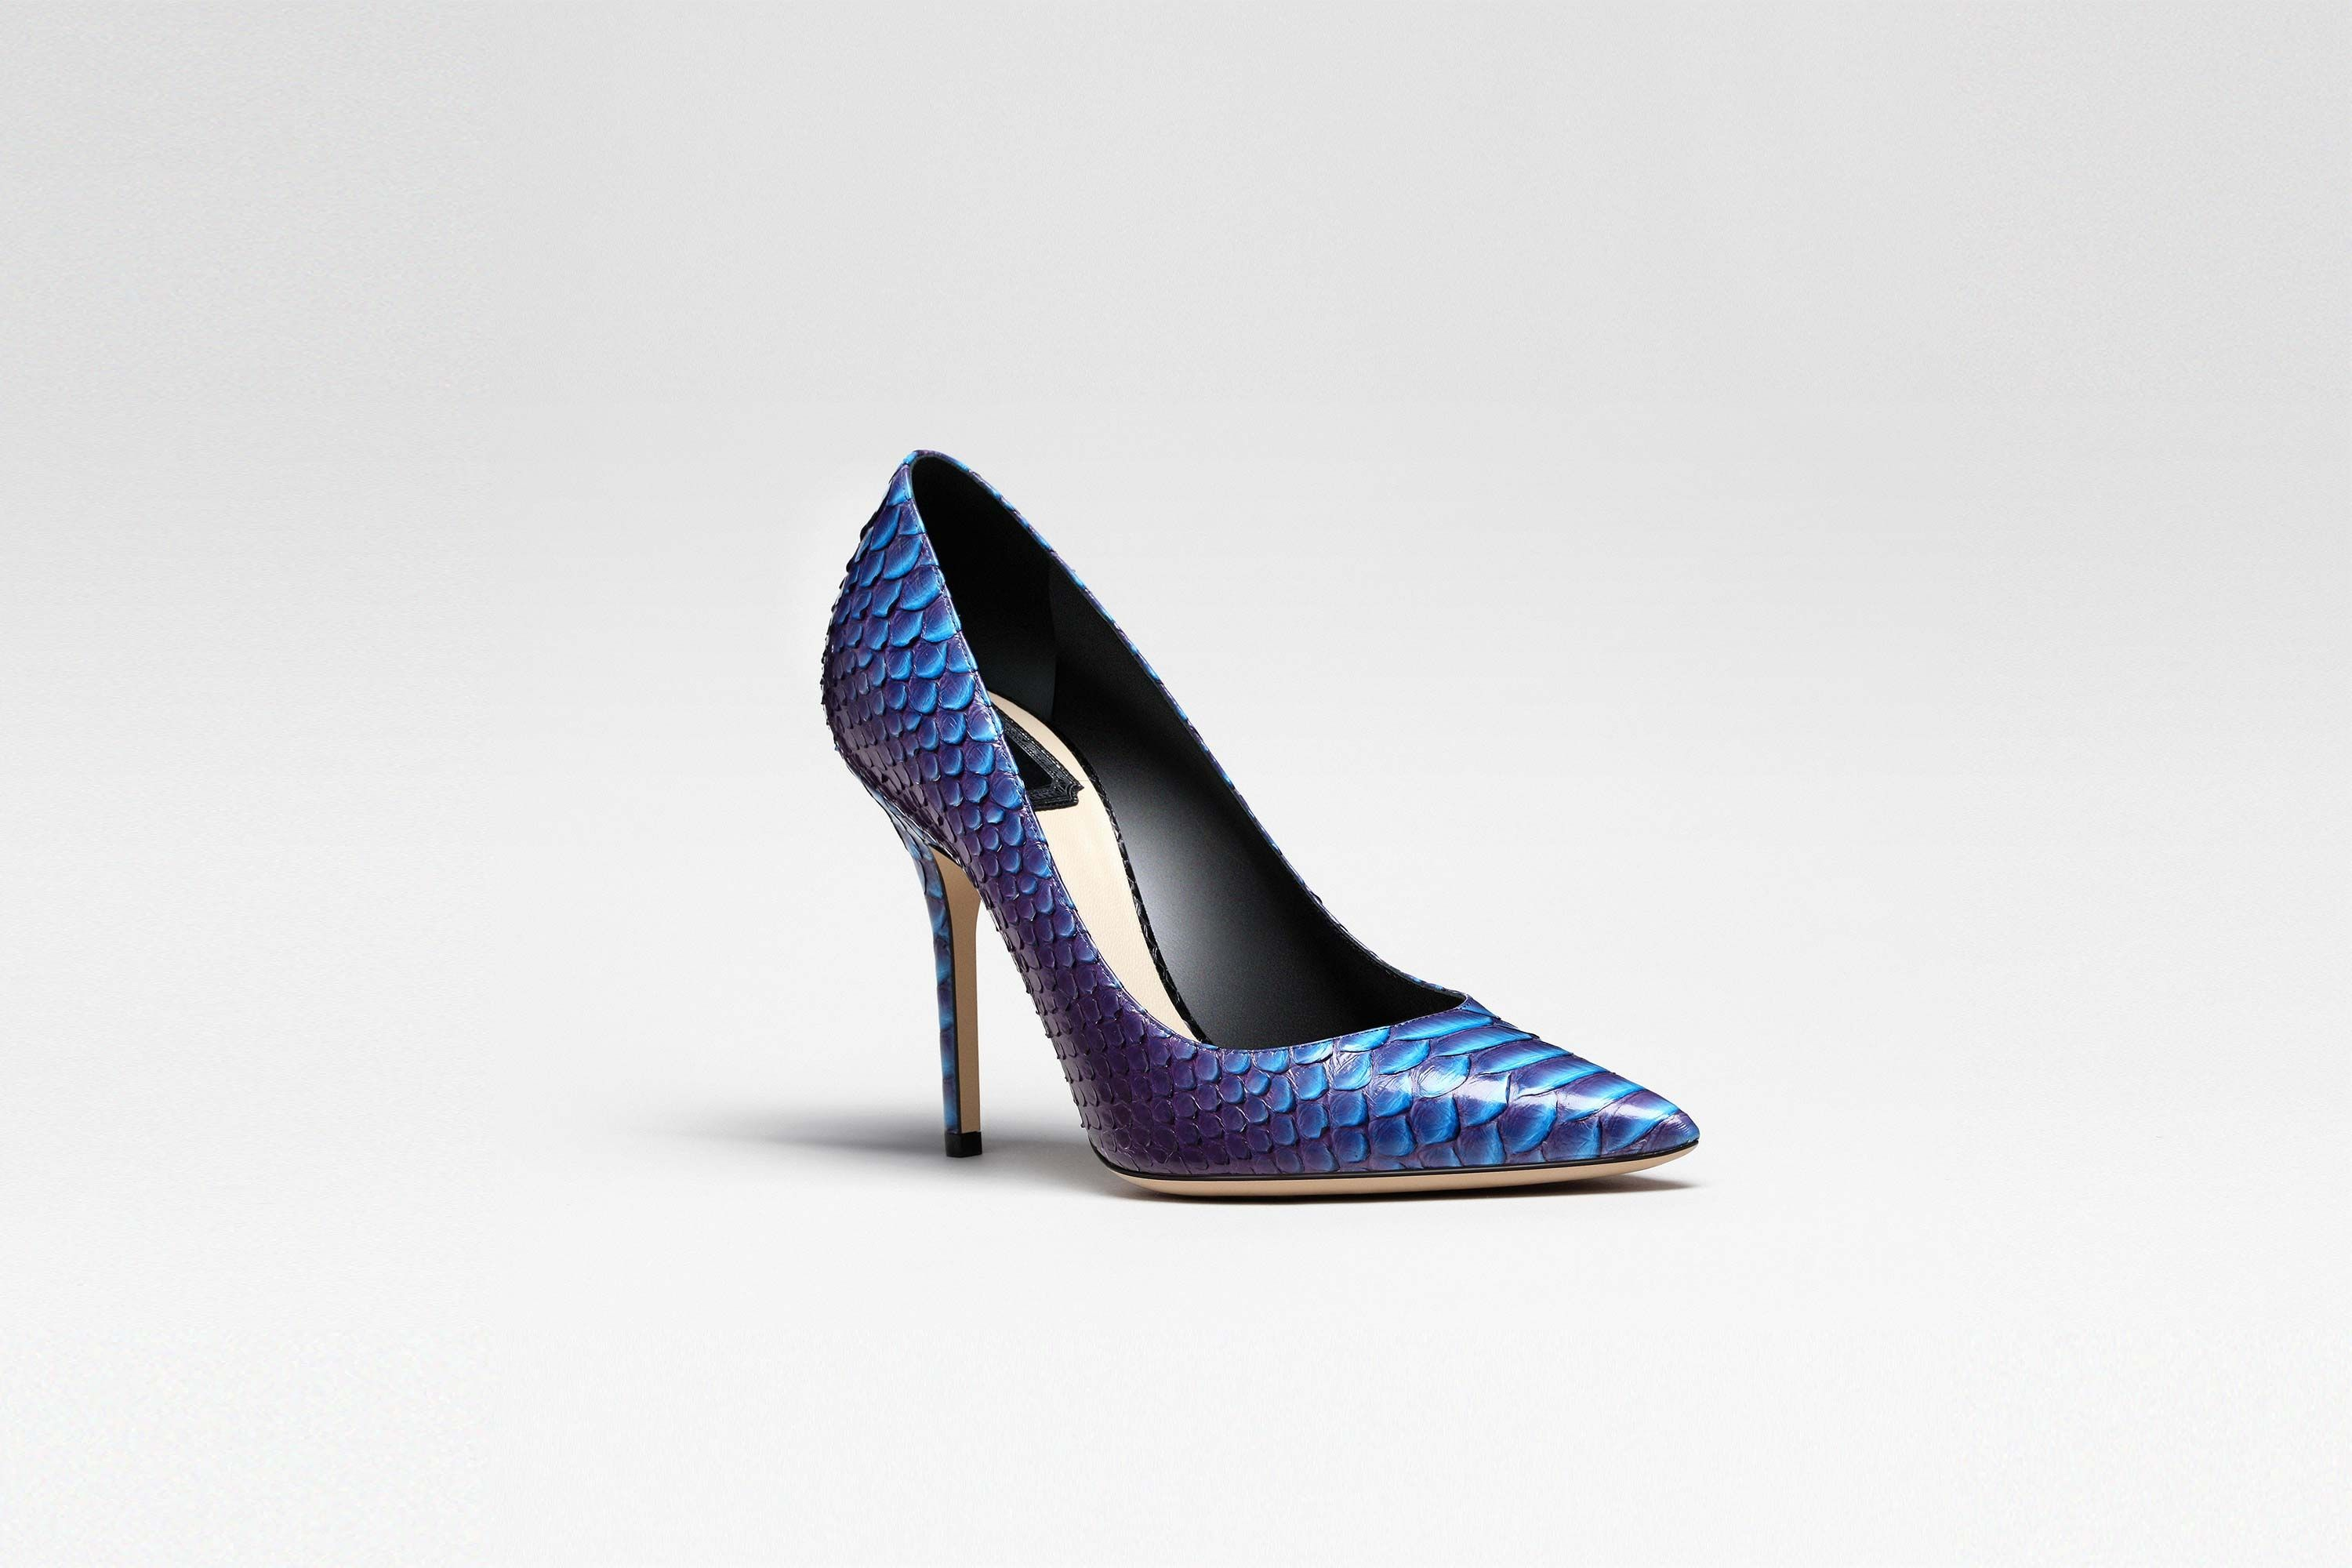 Purple and black python pointed-toe pump, 10 cm - Shoes Dior